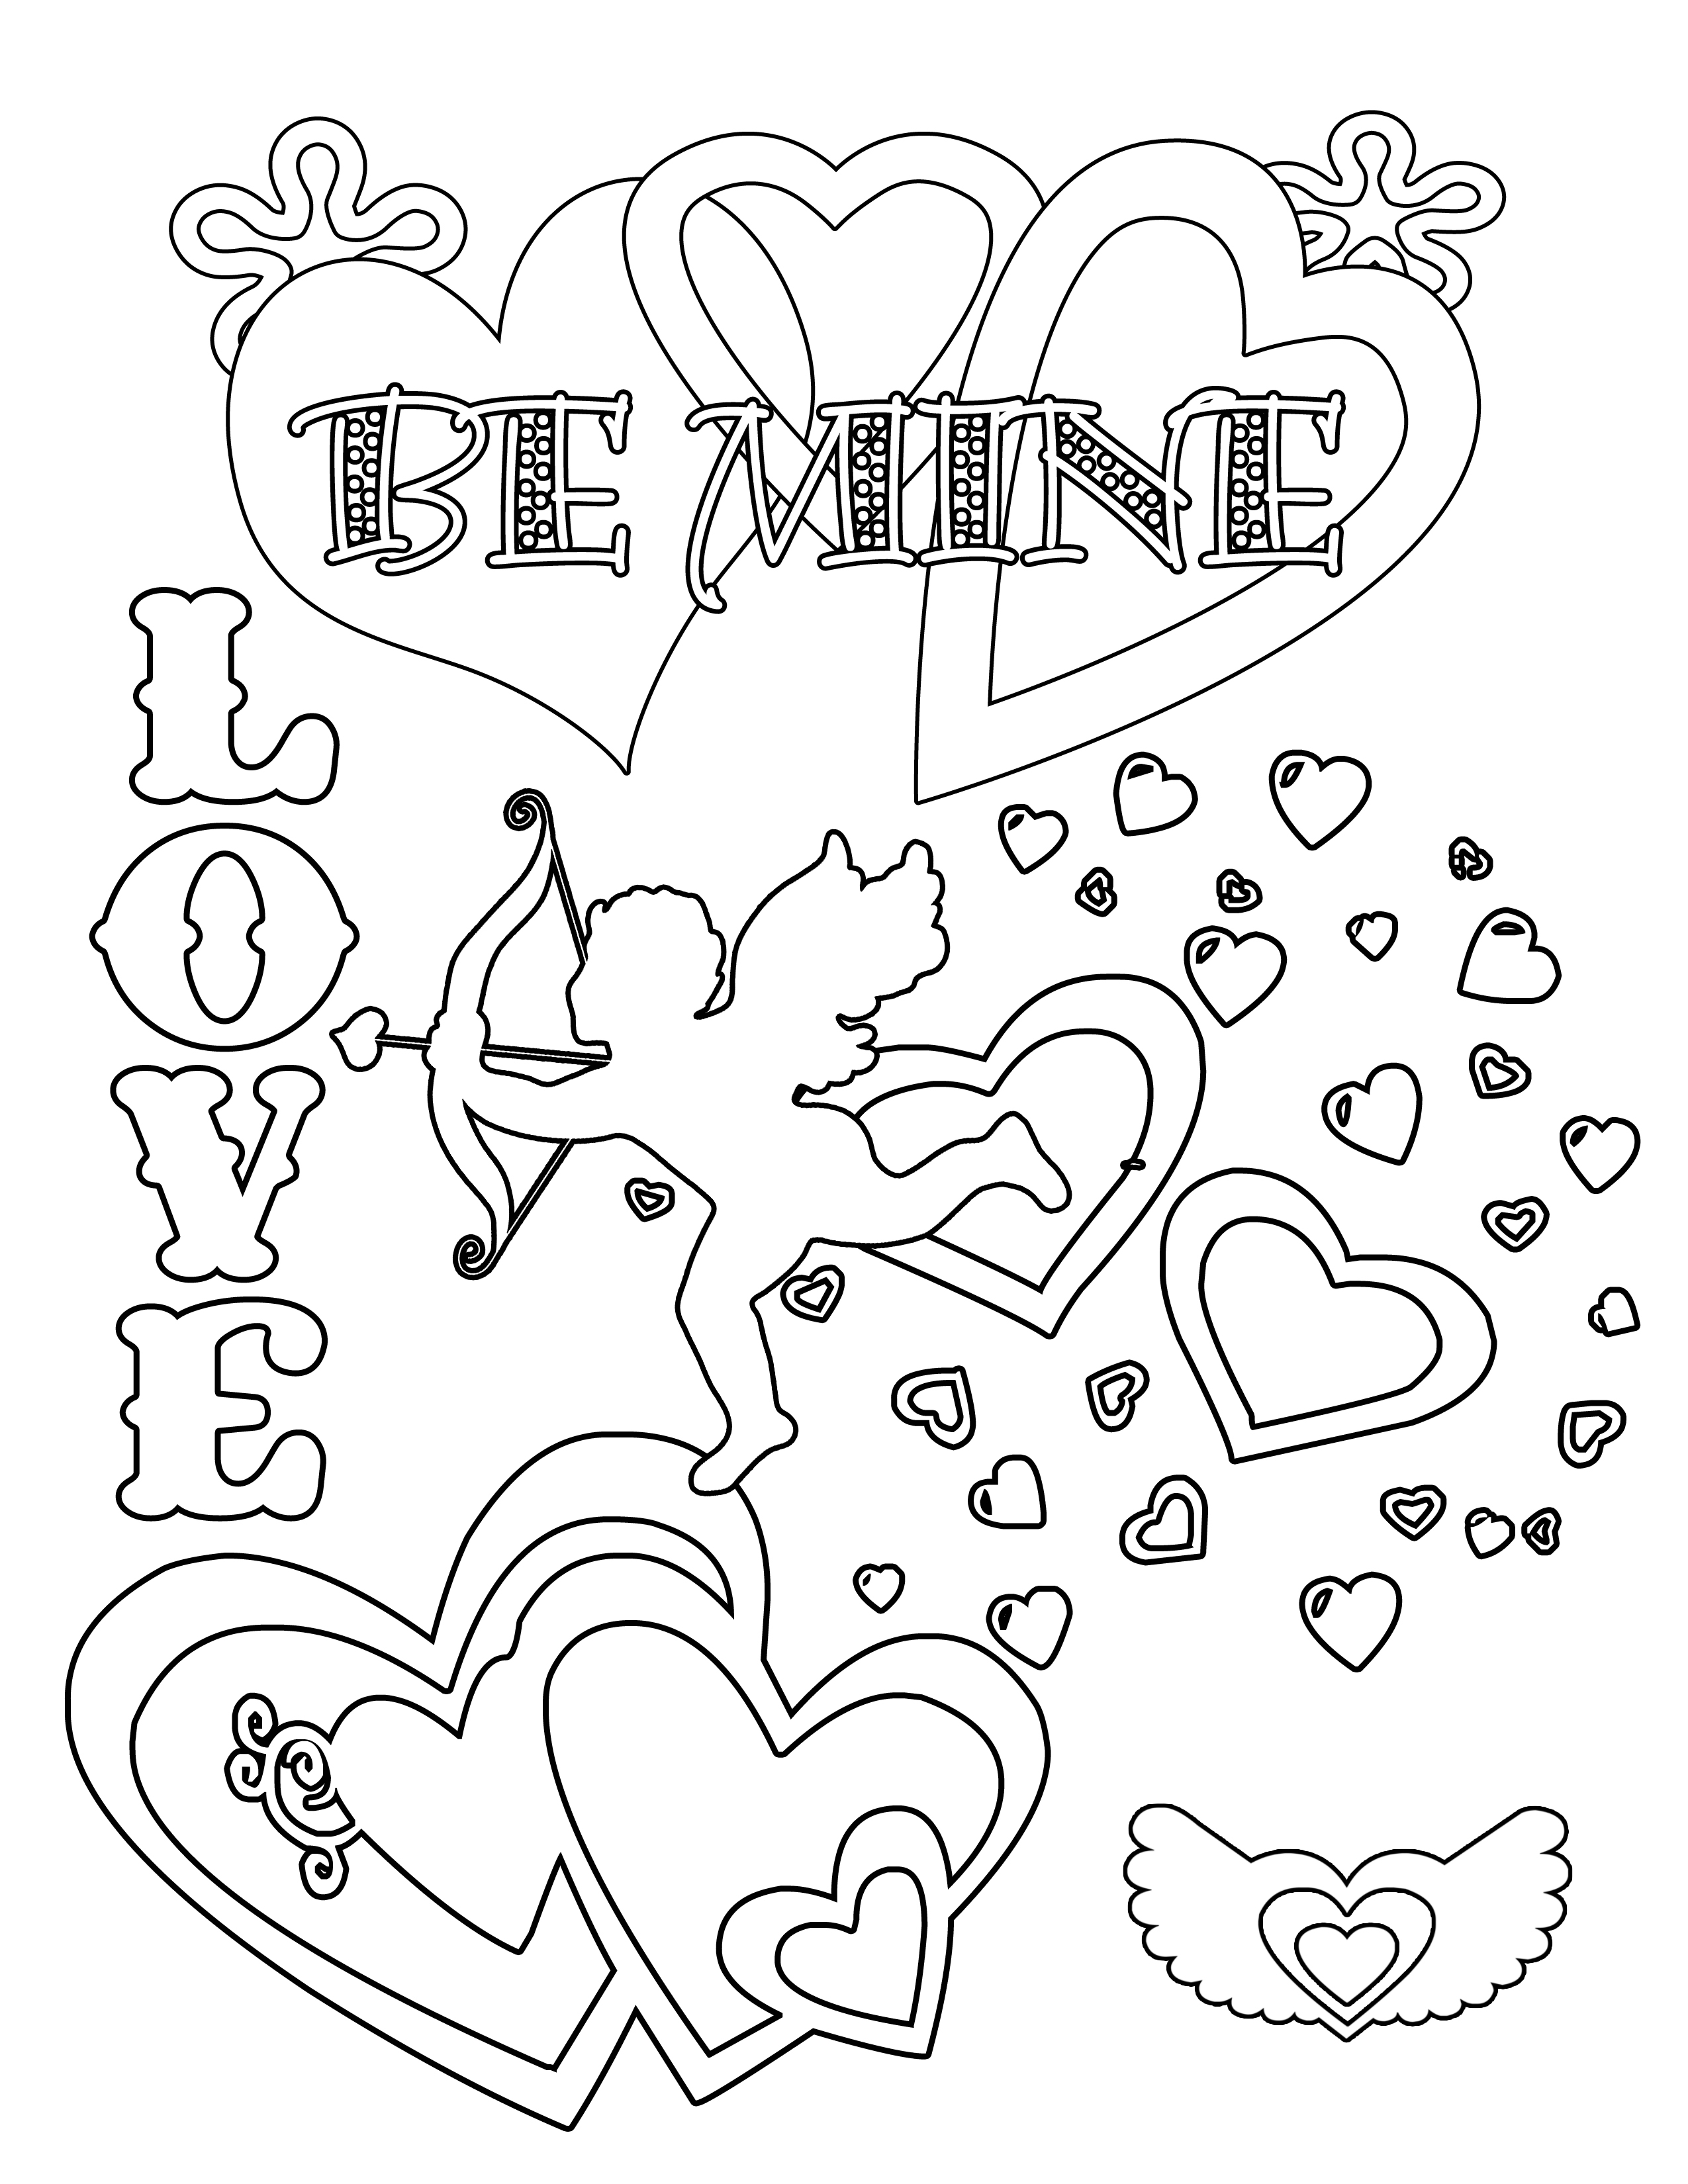 Party Simplicity Free Valentines Day Coloring Pages And Printables